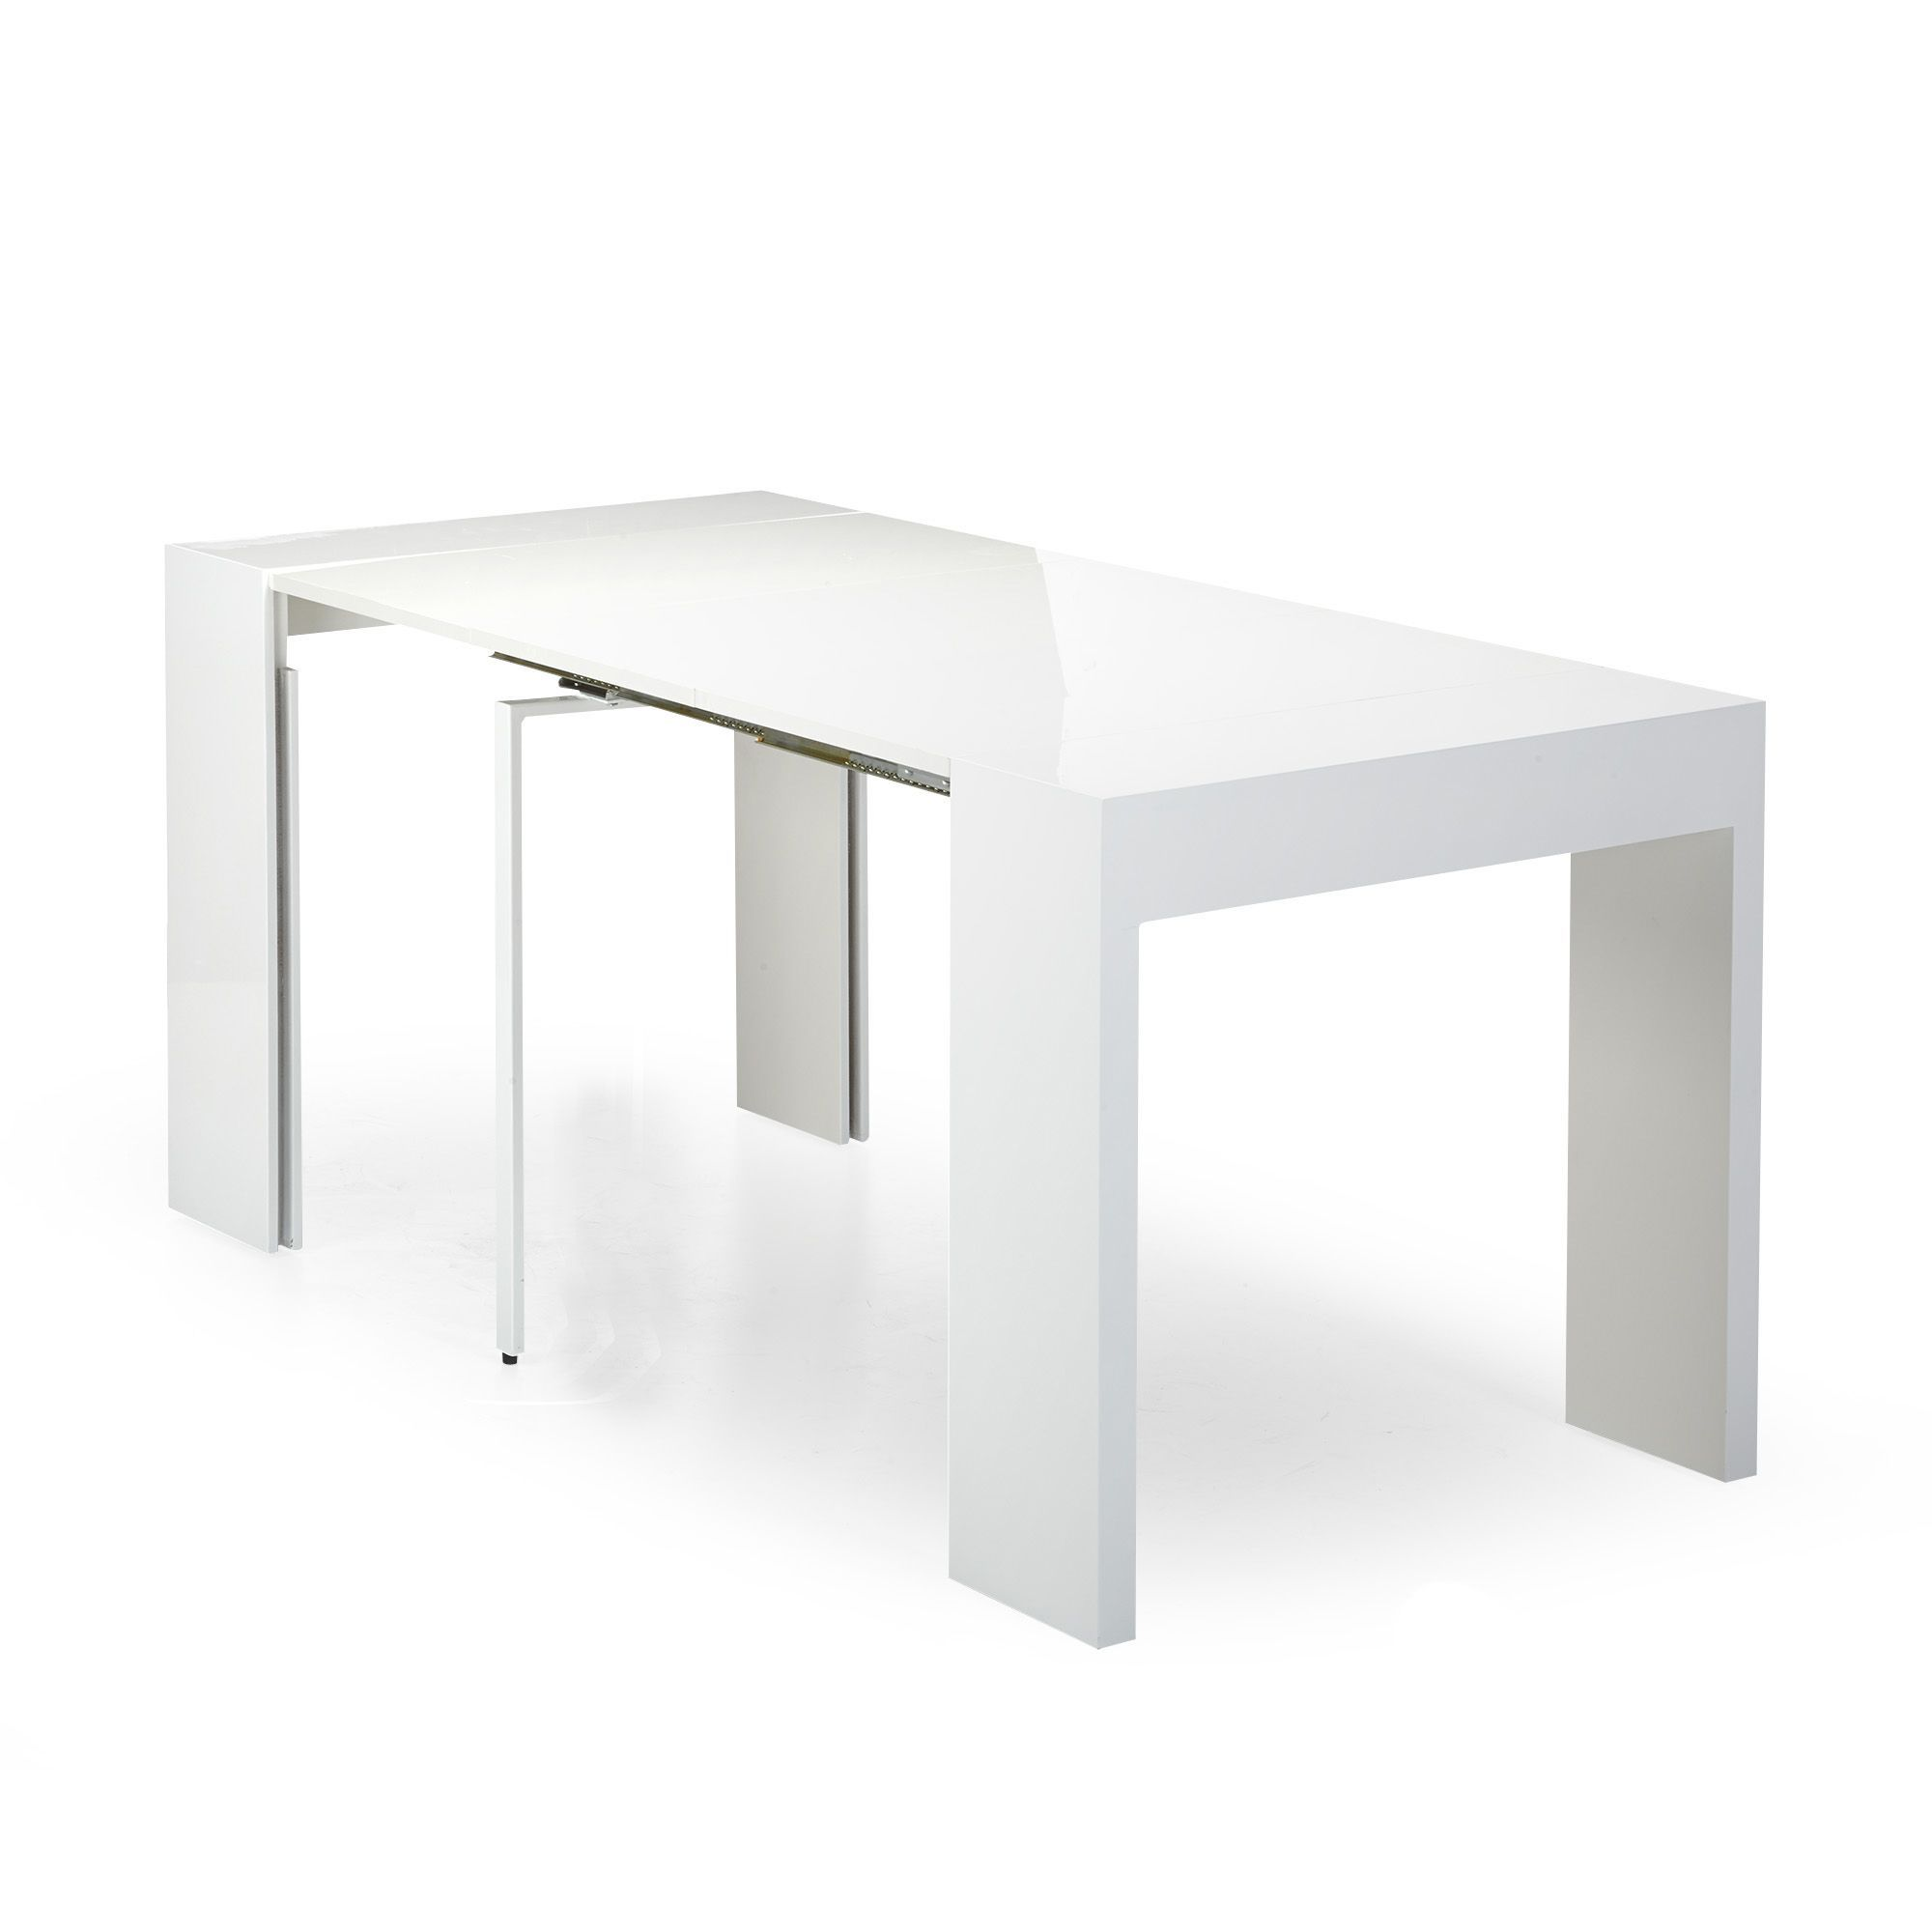 alinea table salle a manger table console blanche lcm speed tables chaises with alinea table. Black Bedroom Furniture Sets. Home Design Ideas